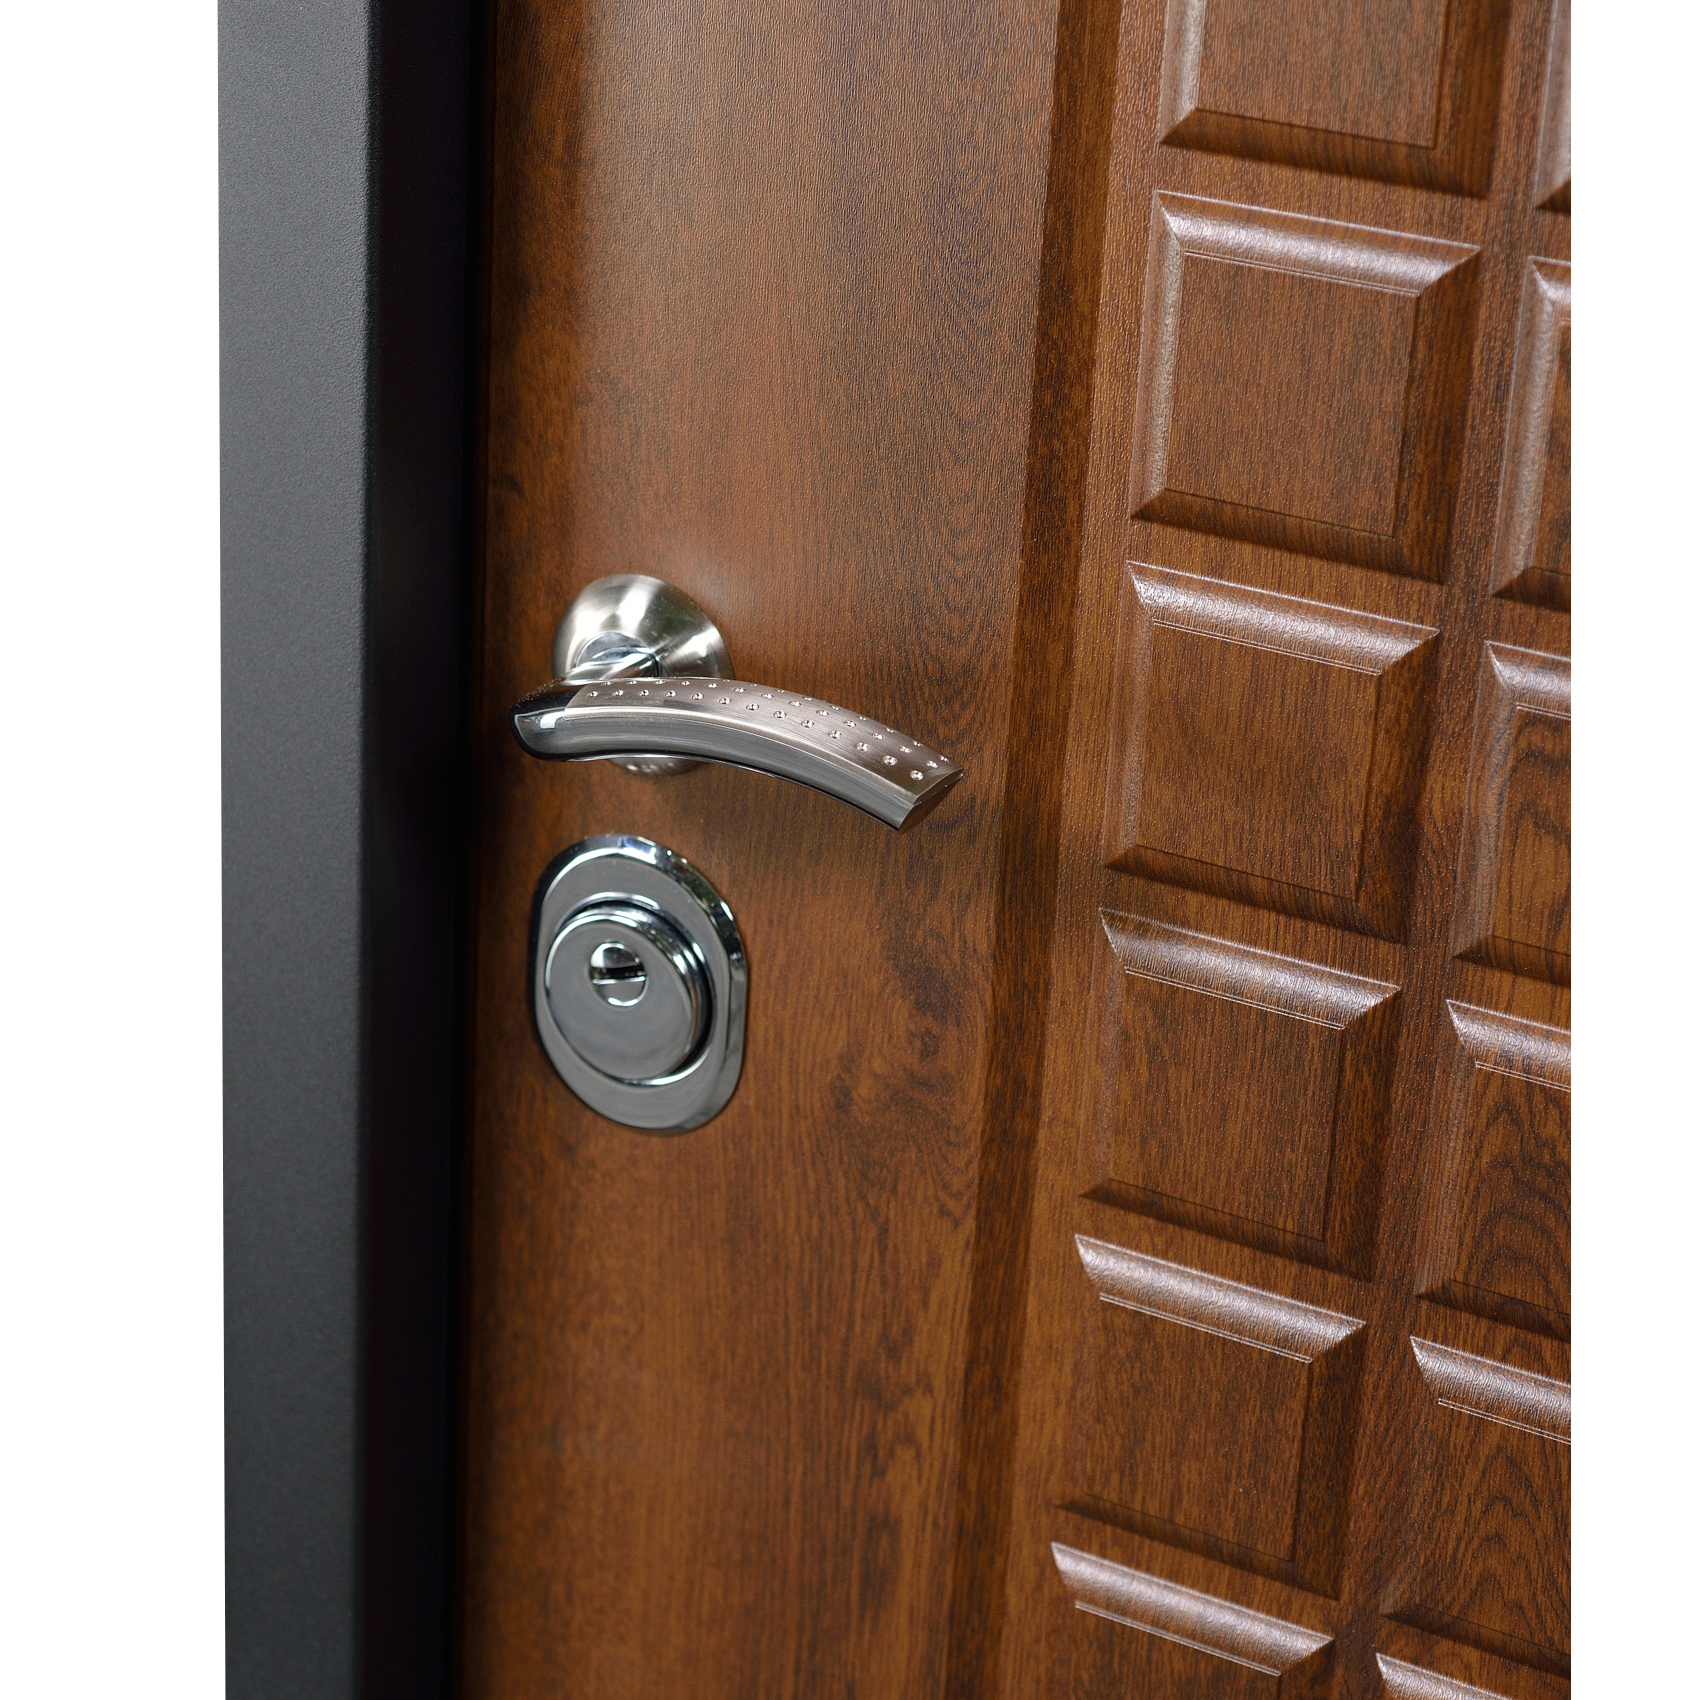 Where To Buy A Front Door: Buy Tokyo Front Door At A Bargain Price From Novo Porte At